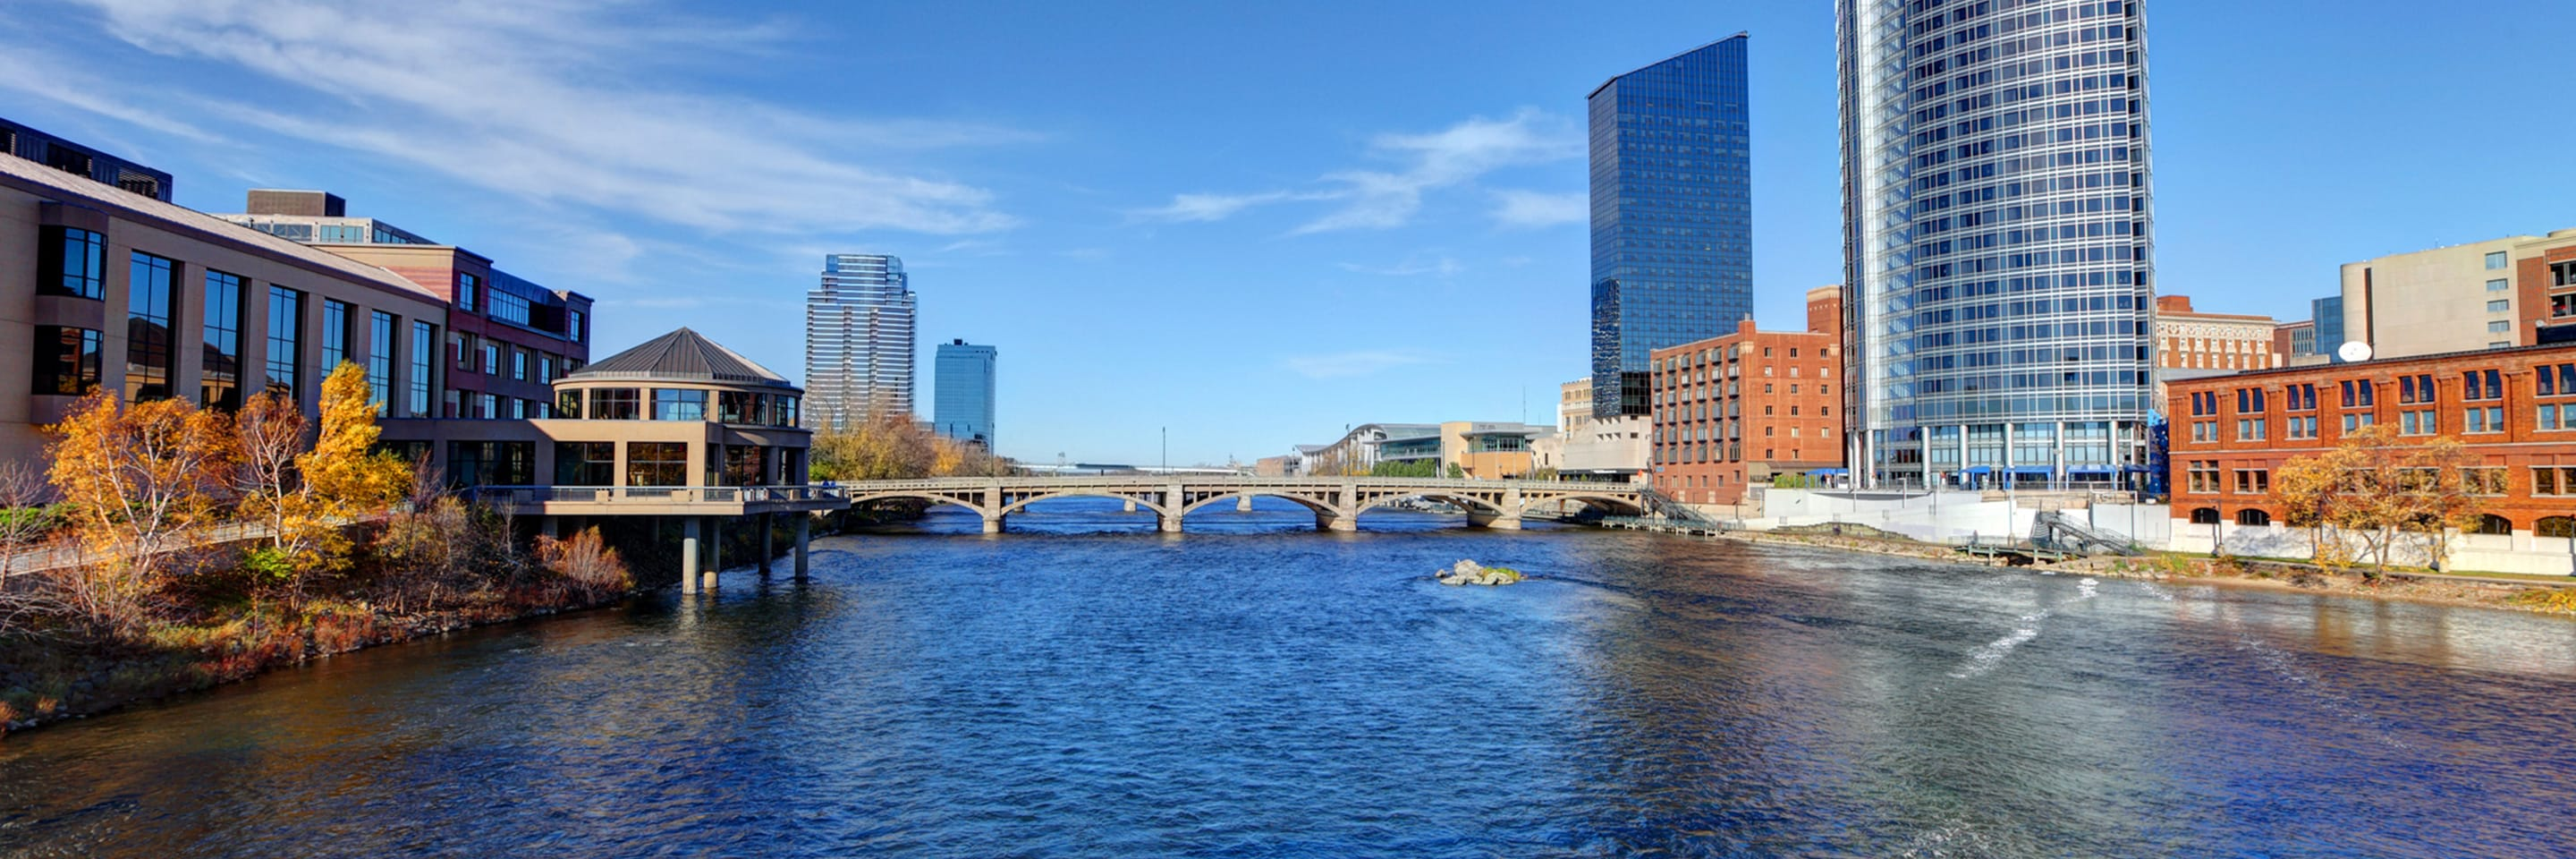 Hôtels à Grand Rapids